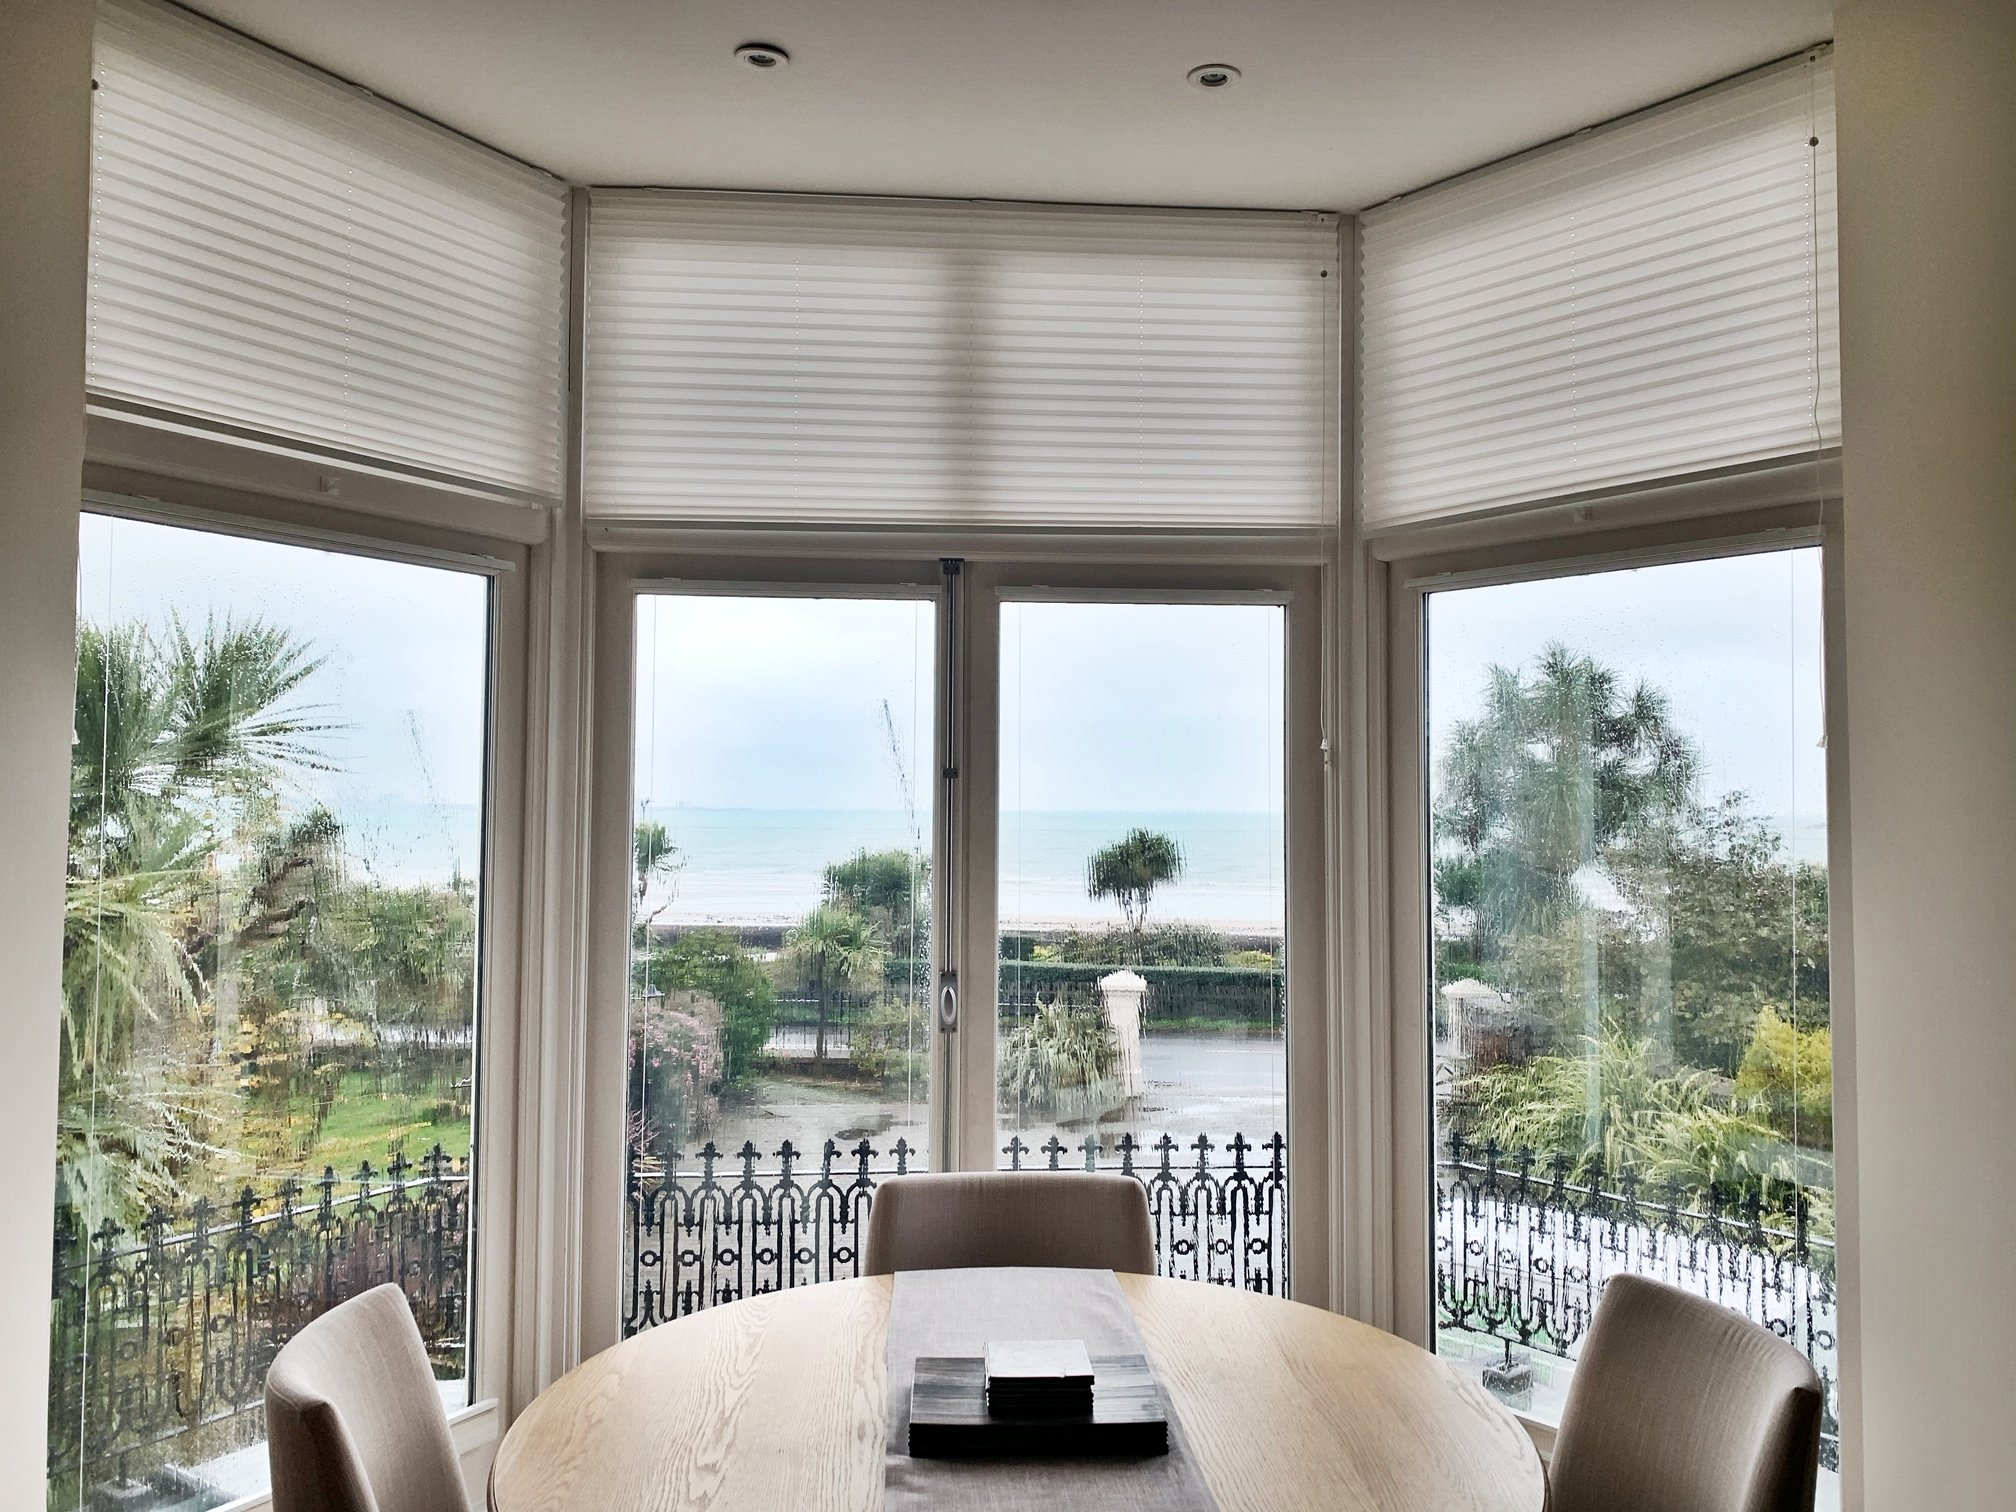 Non Qualified, Short Let, 2 Bedroom Apartment Beaumont with Sea Views & Parking